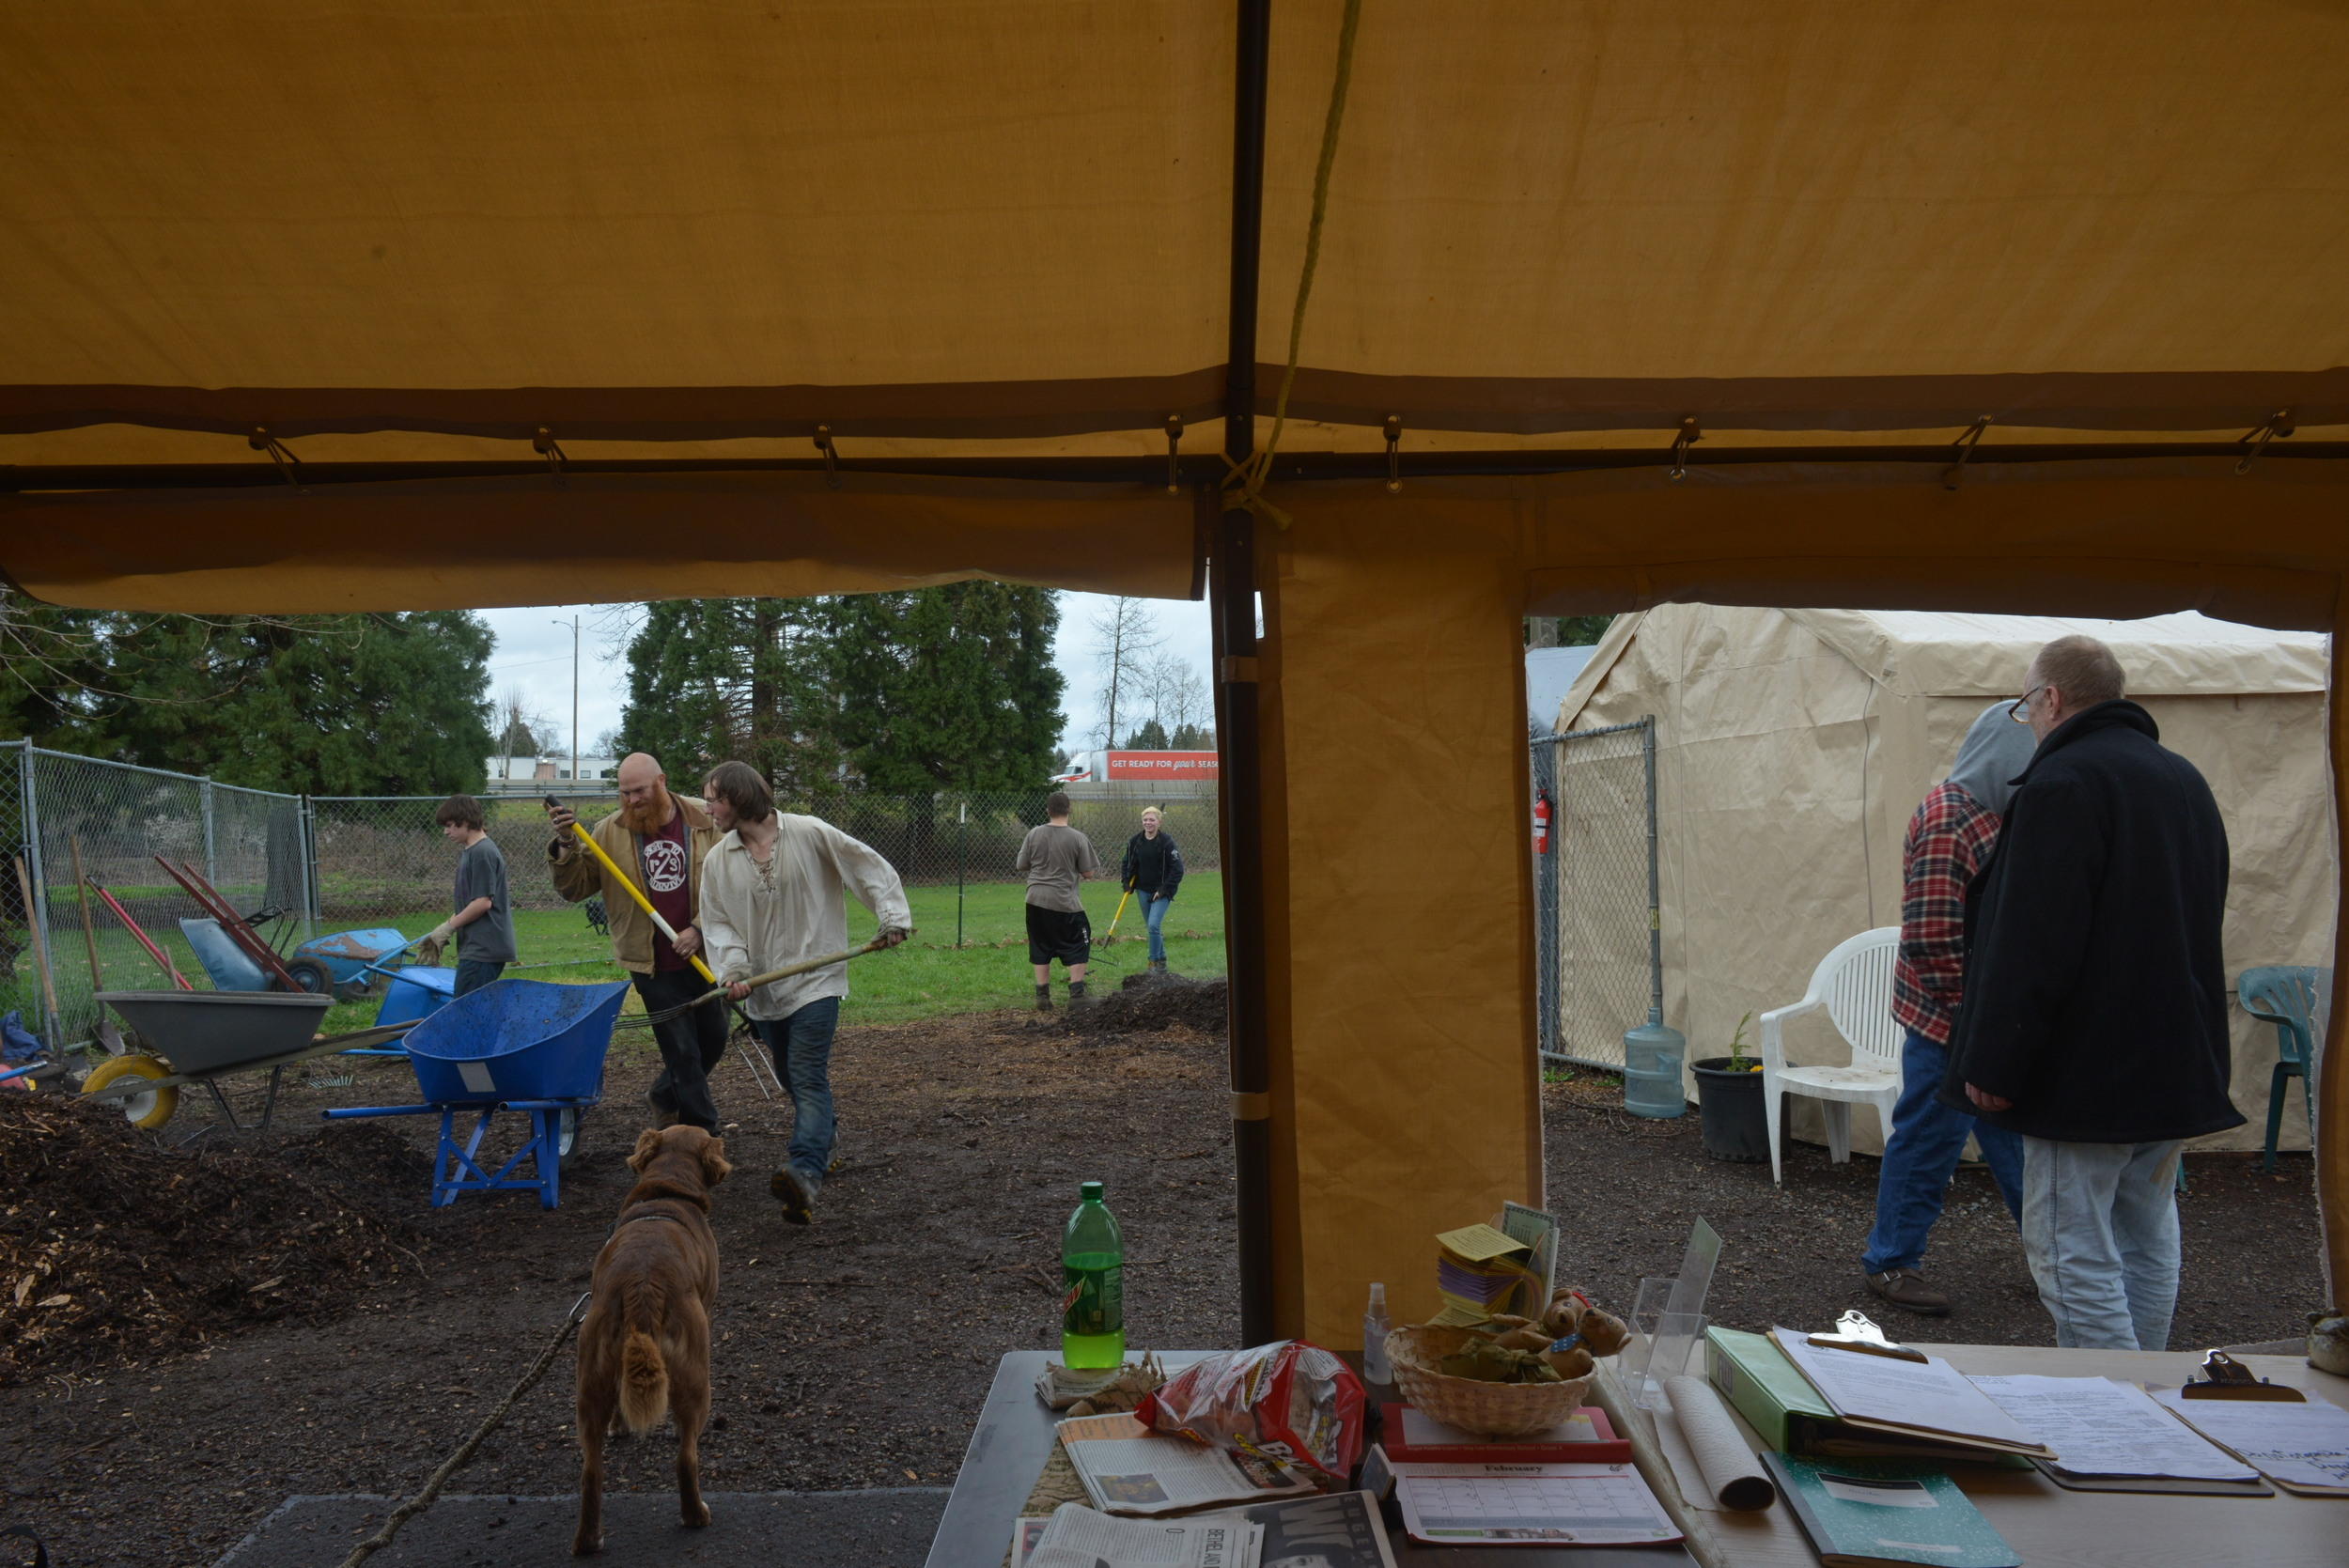 Eugene, Ore. - The Nightingale residents do community service with at-risk youth. By: Debra Josephson